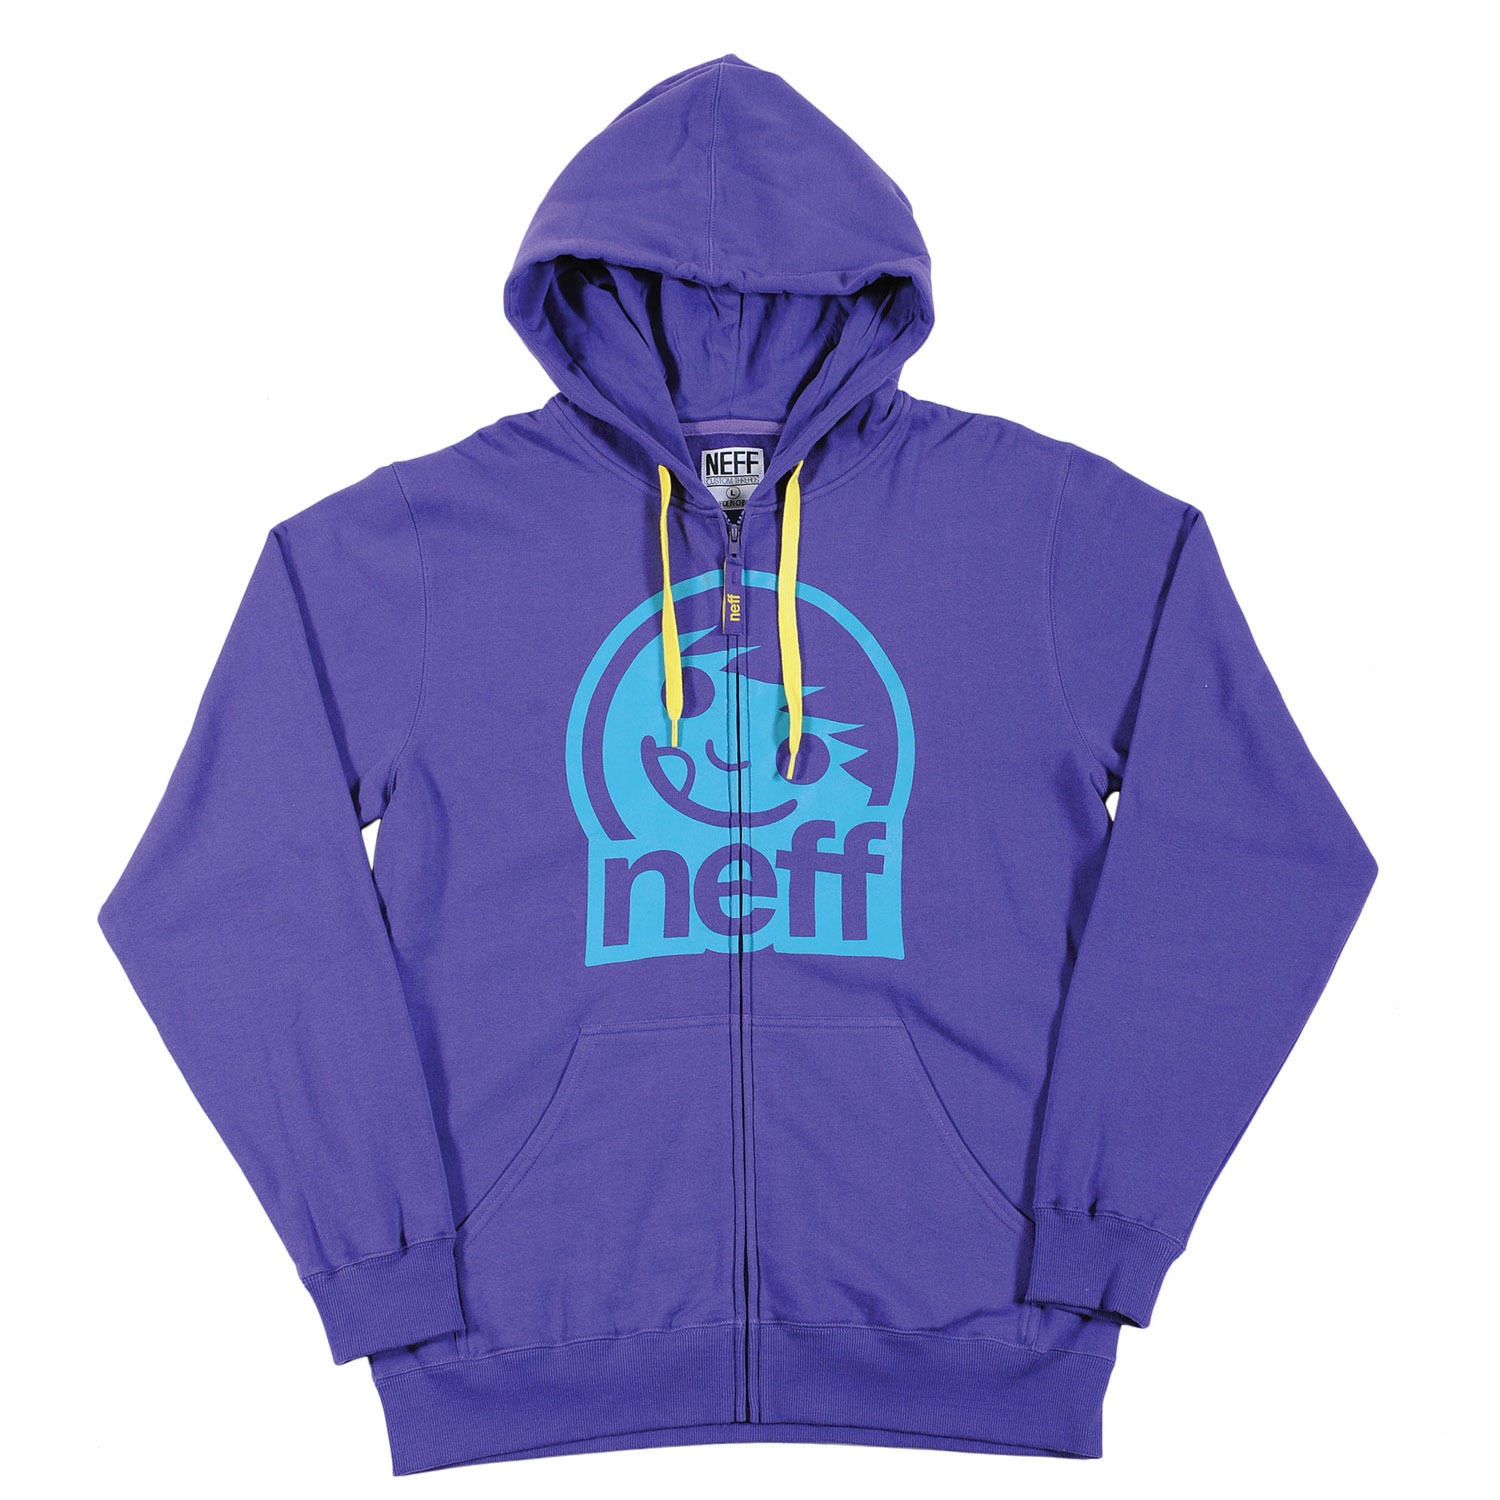 Skateboard Key Features of the Neff Corpo 2 Hoodie: 80% Cotton, 20% Polyester - $50.00